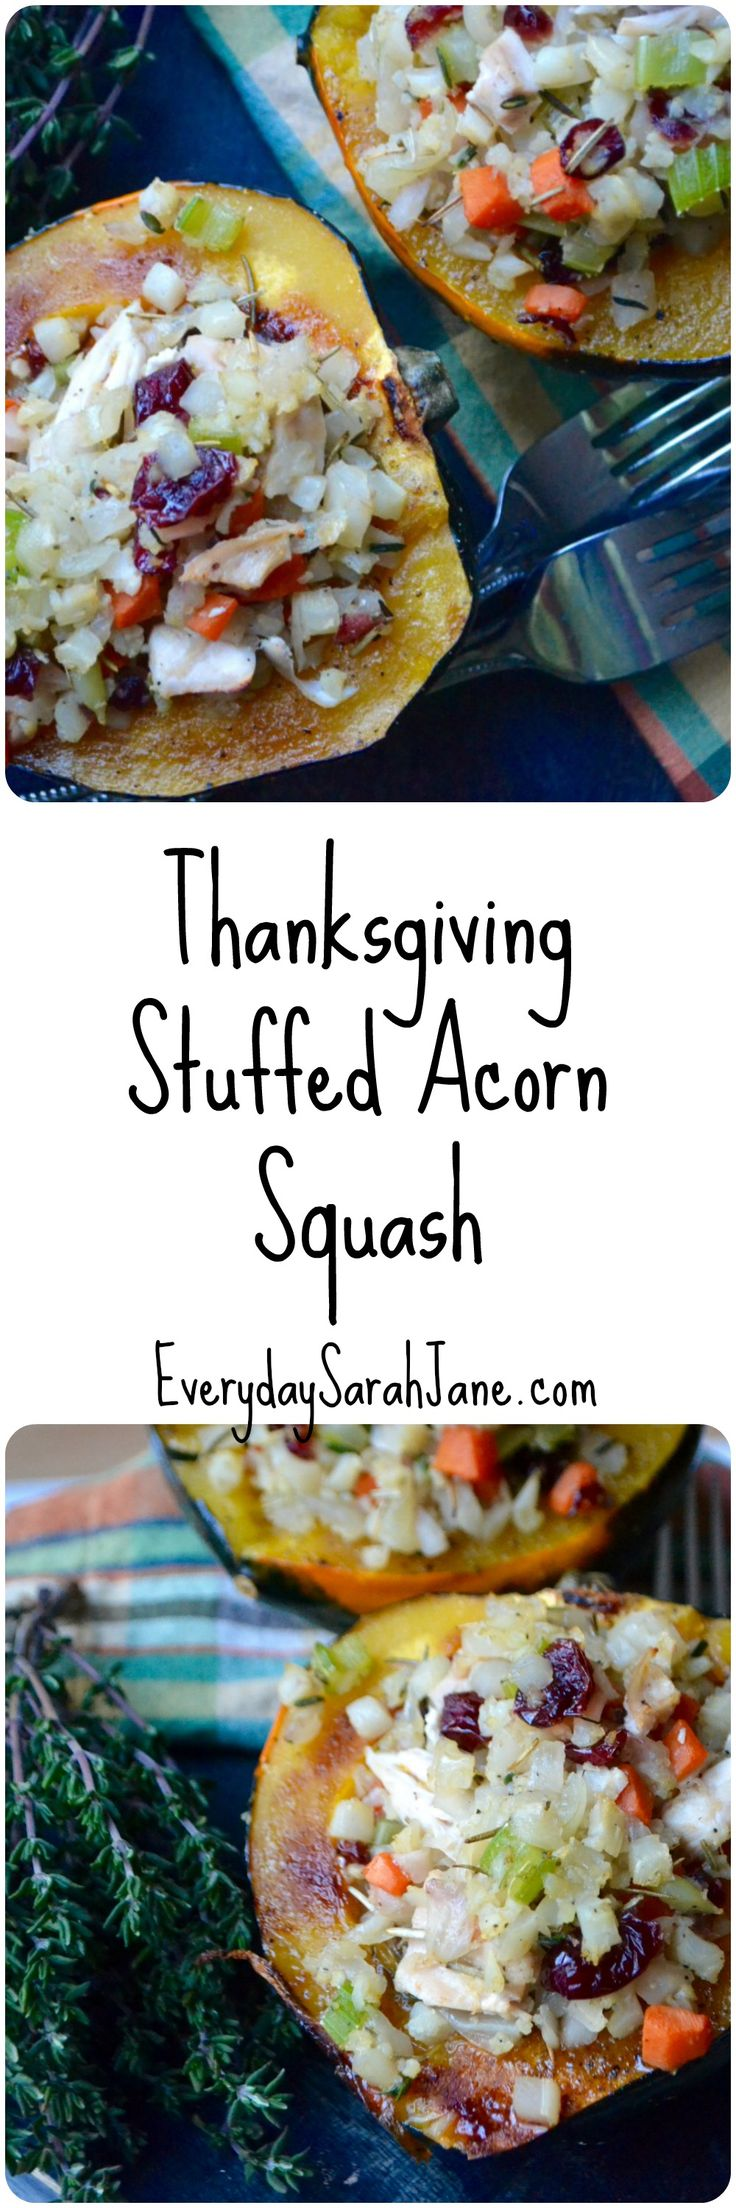 One of my favorite ways to use Thanksgiving leftovers!